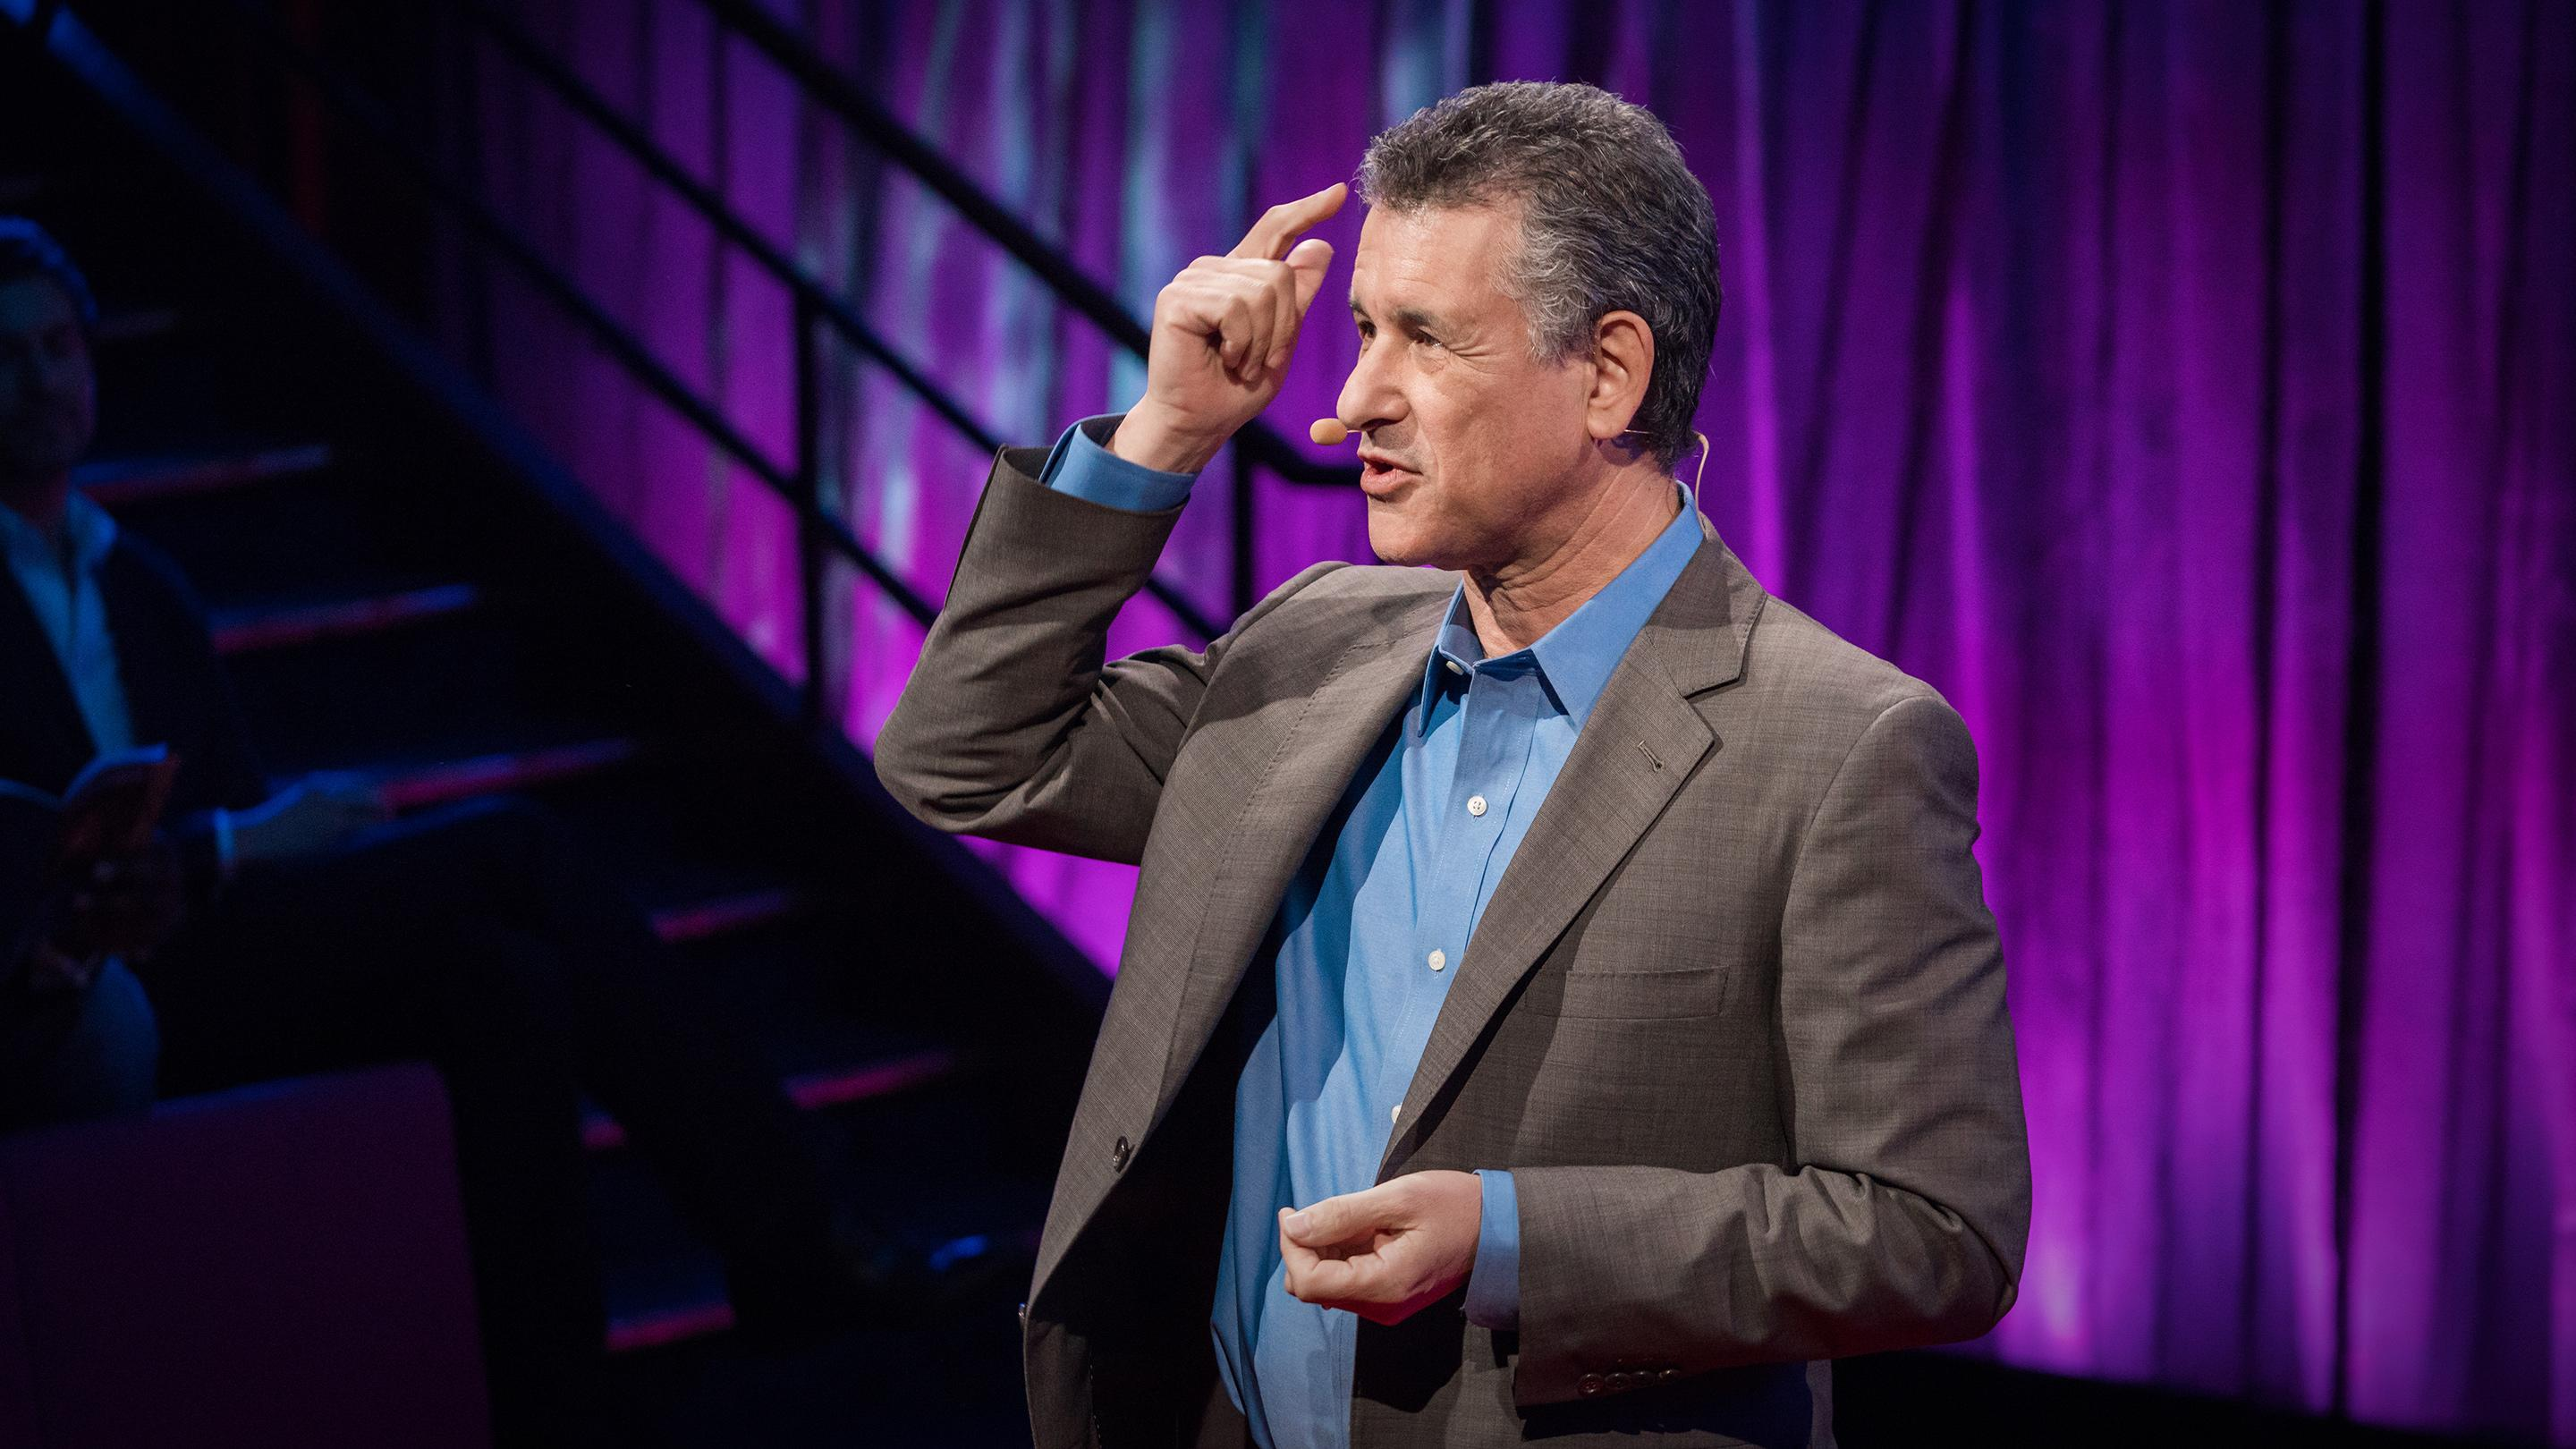 Daniel Levitin: How to stay calm when you know you'll be stressed